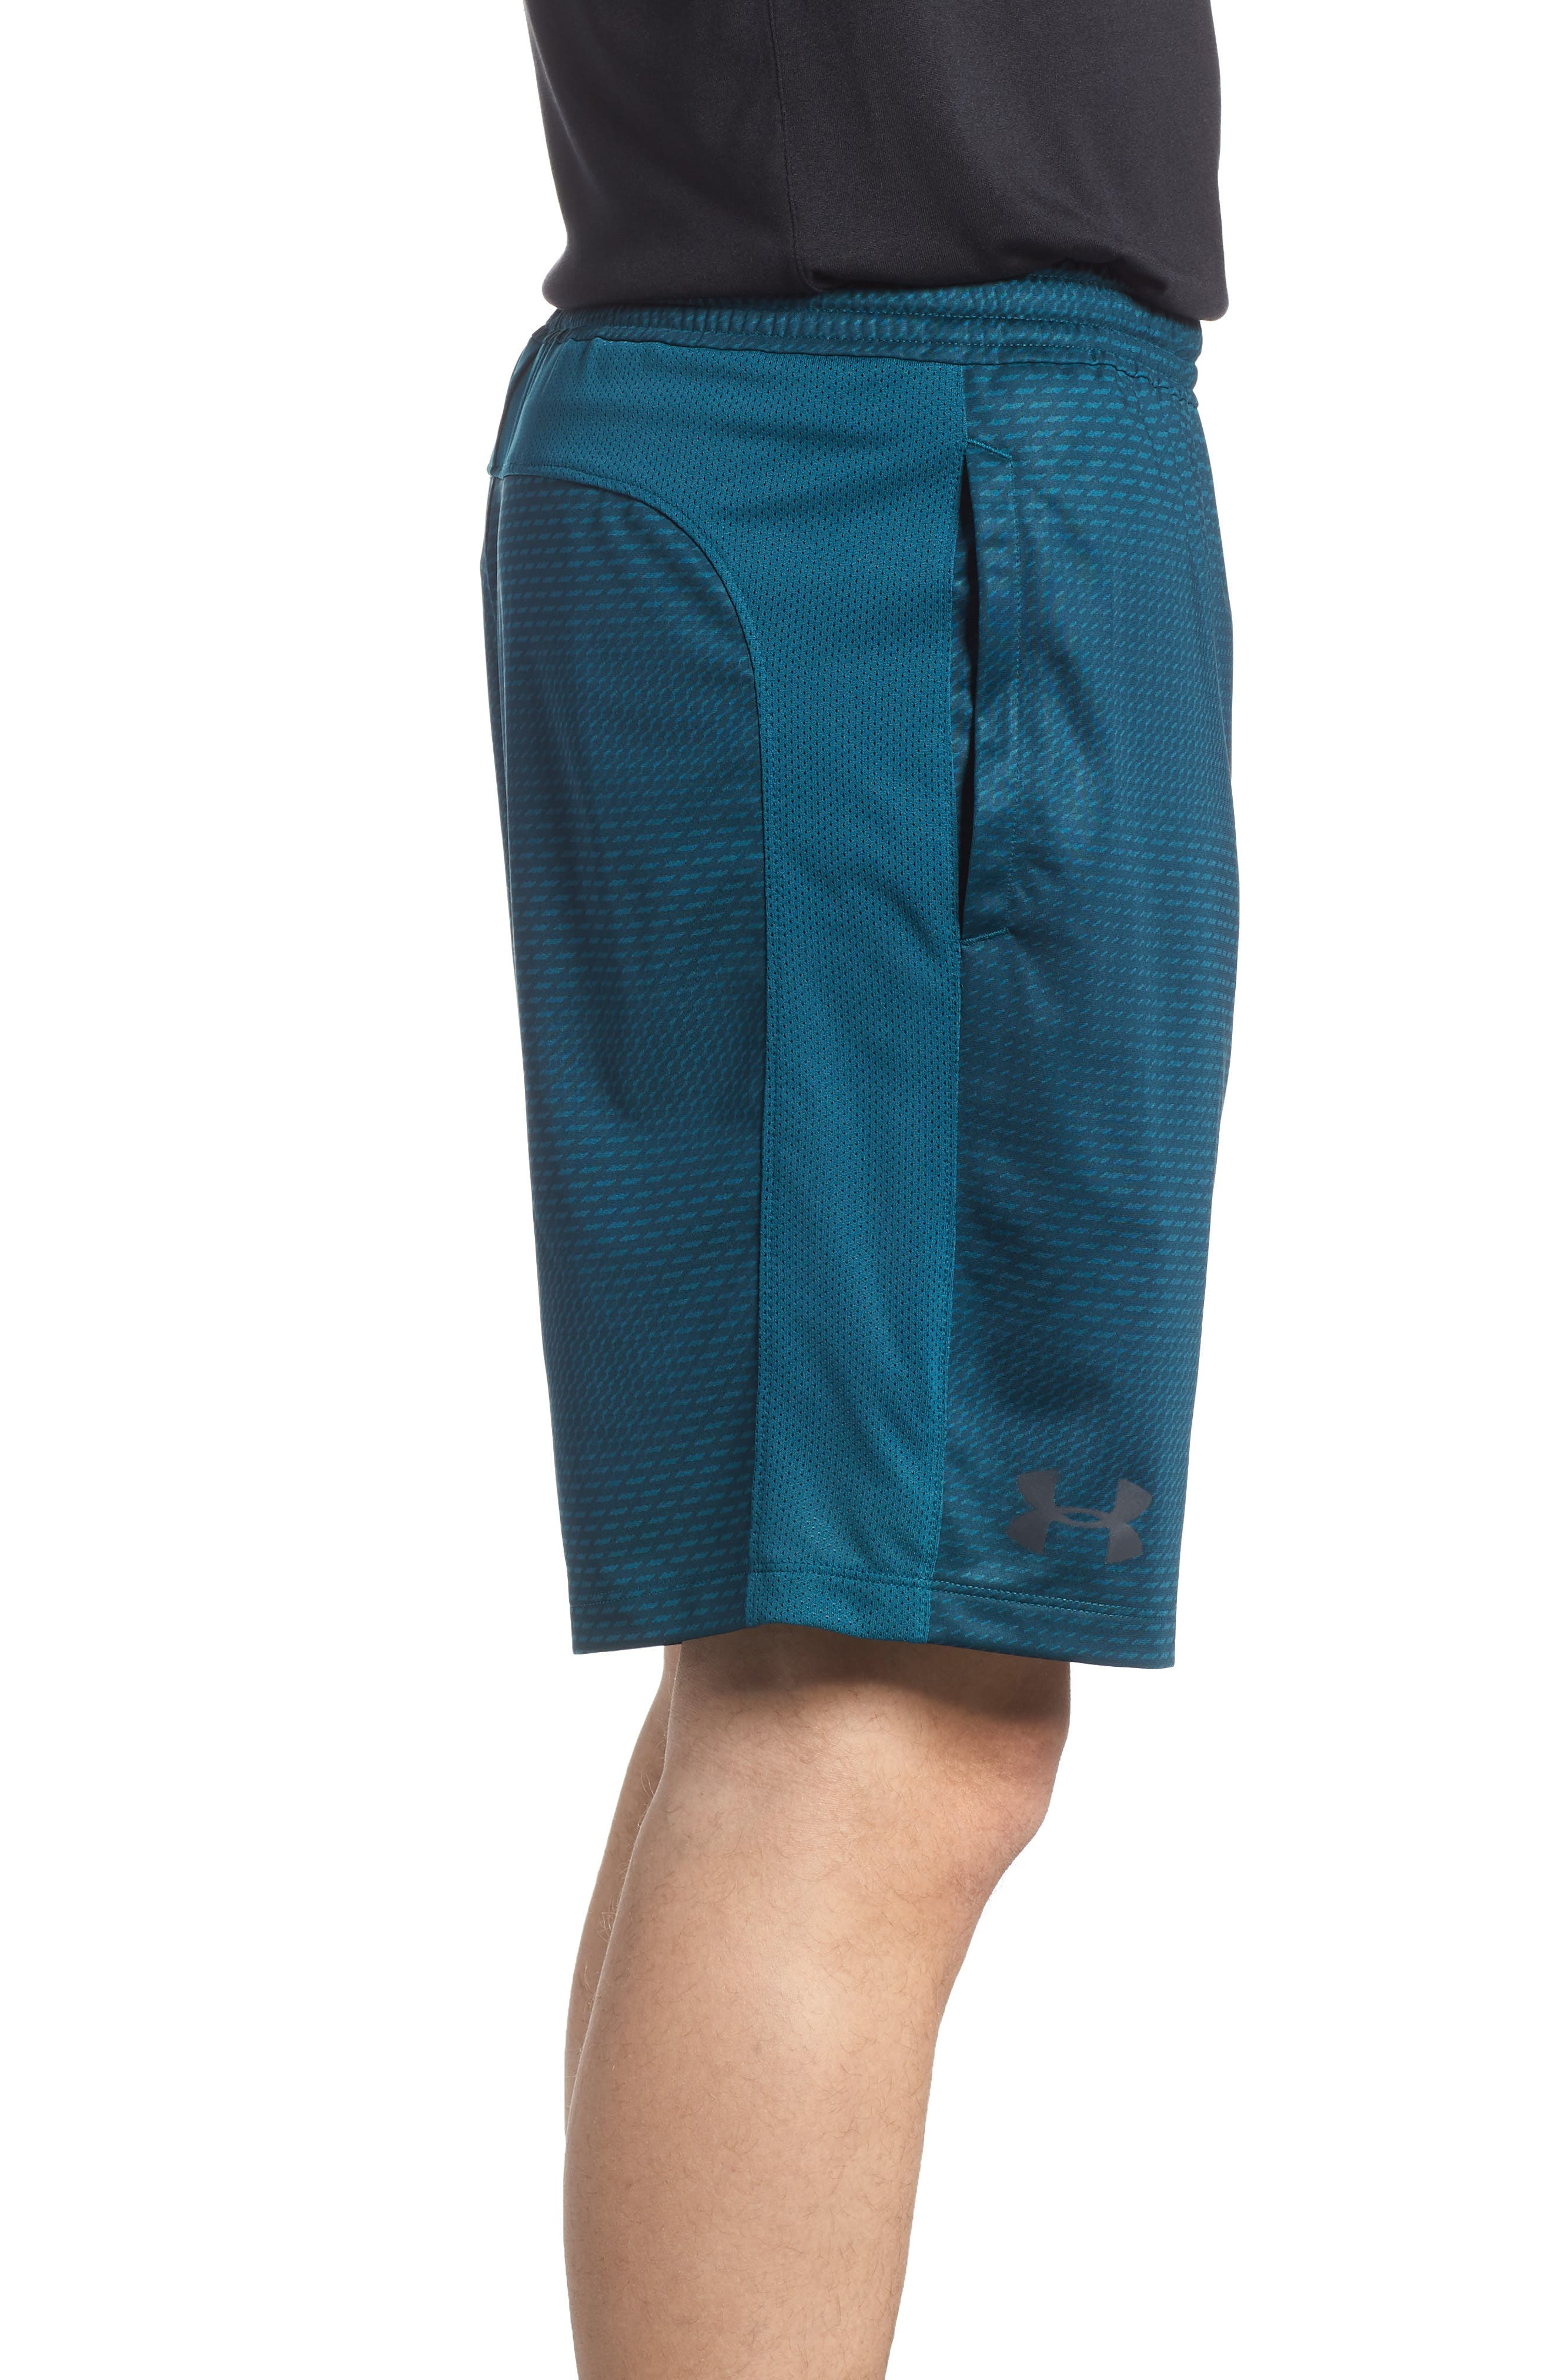 Raid 2.0 Classic Fit Shorts,                             Alternate thumbnail 3, color,                             Tourmaline Teal/ Stealth Gray